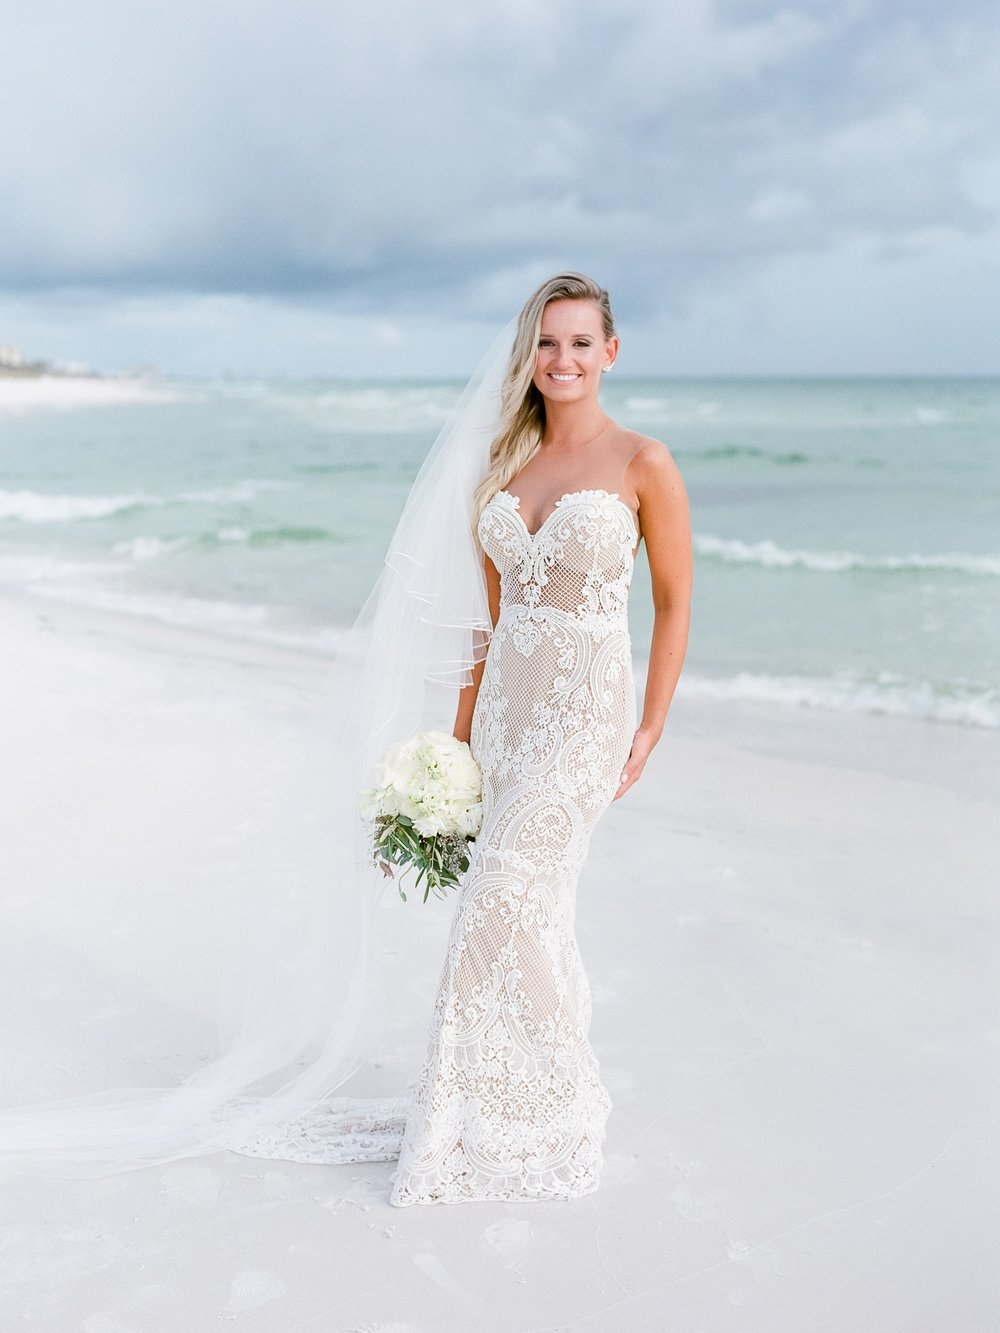 Jessie Barksdale Photography_beautiful bride_beach wedding inspiration_berta wedding dress